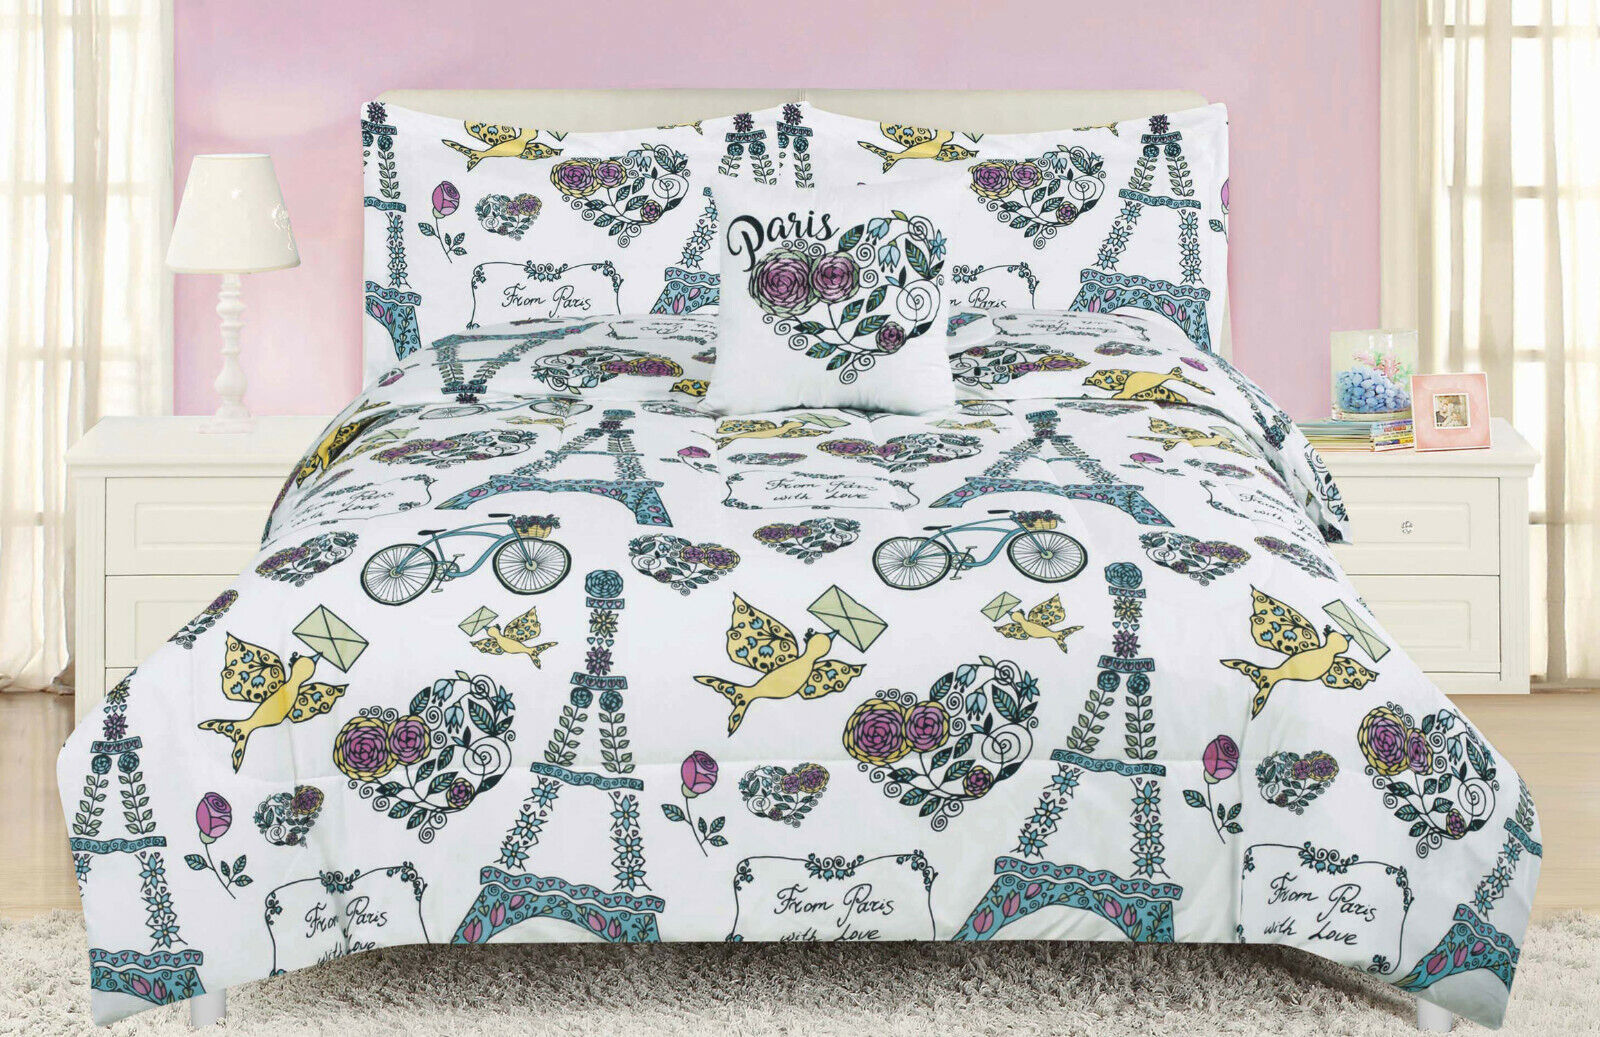 Paris Floral Twin or Full Comforter Bedding Set Flowers French Eiffel Tower Rose Bedding